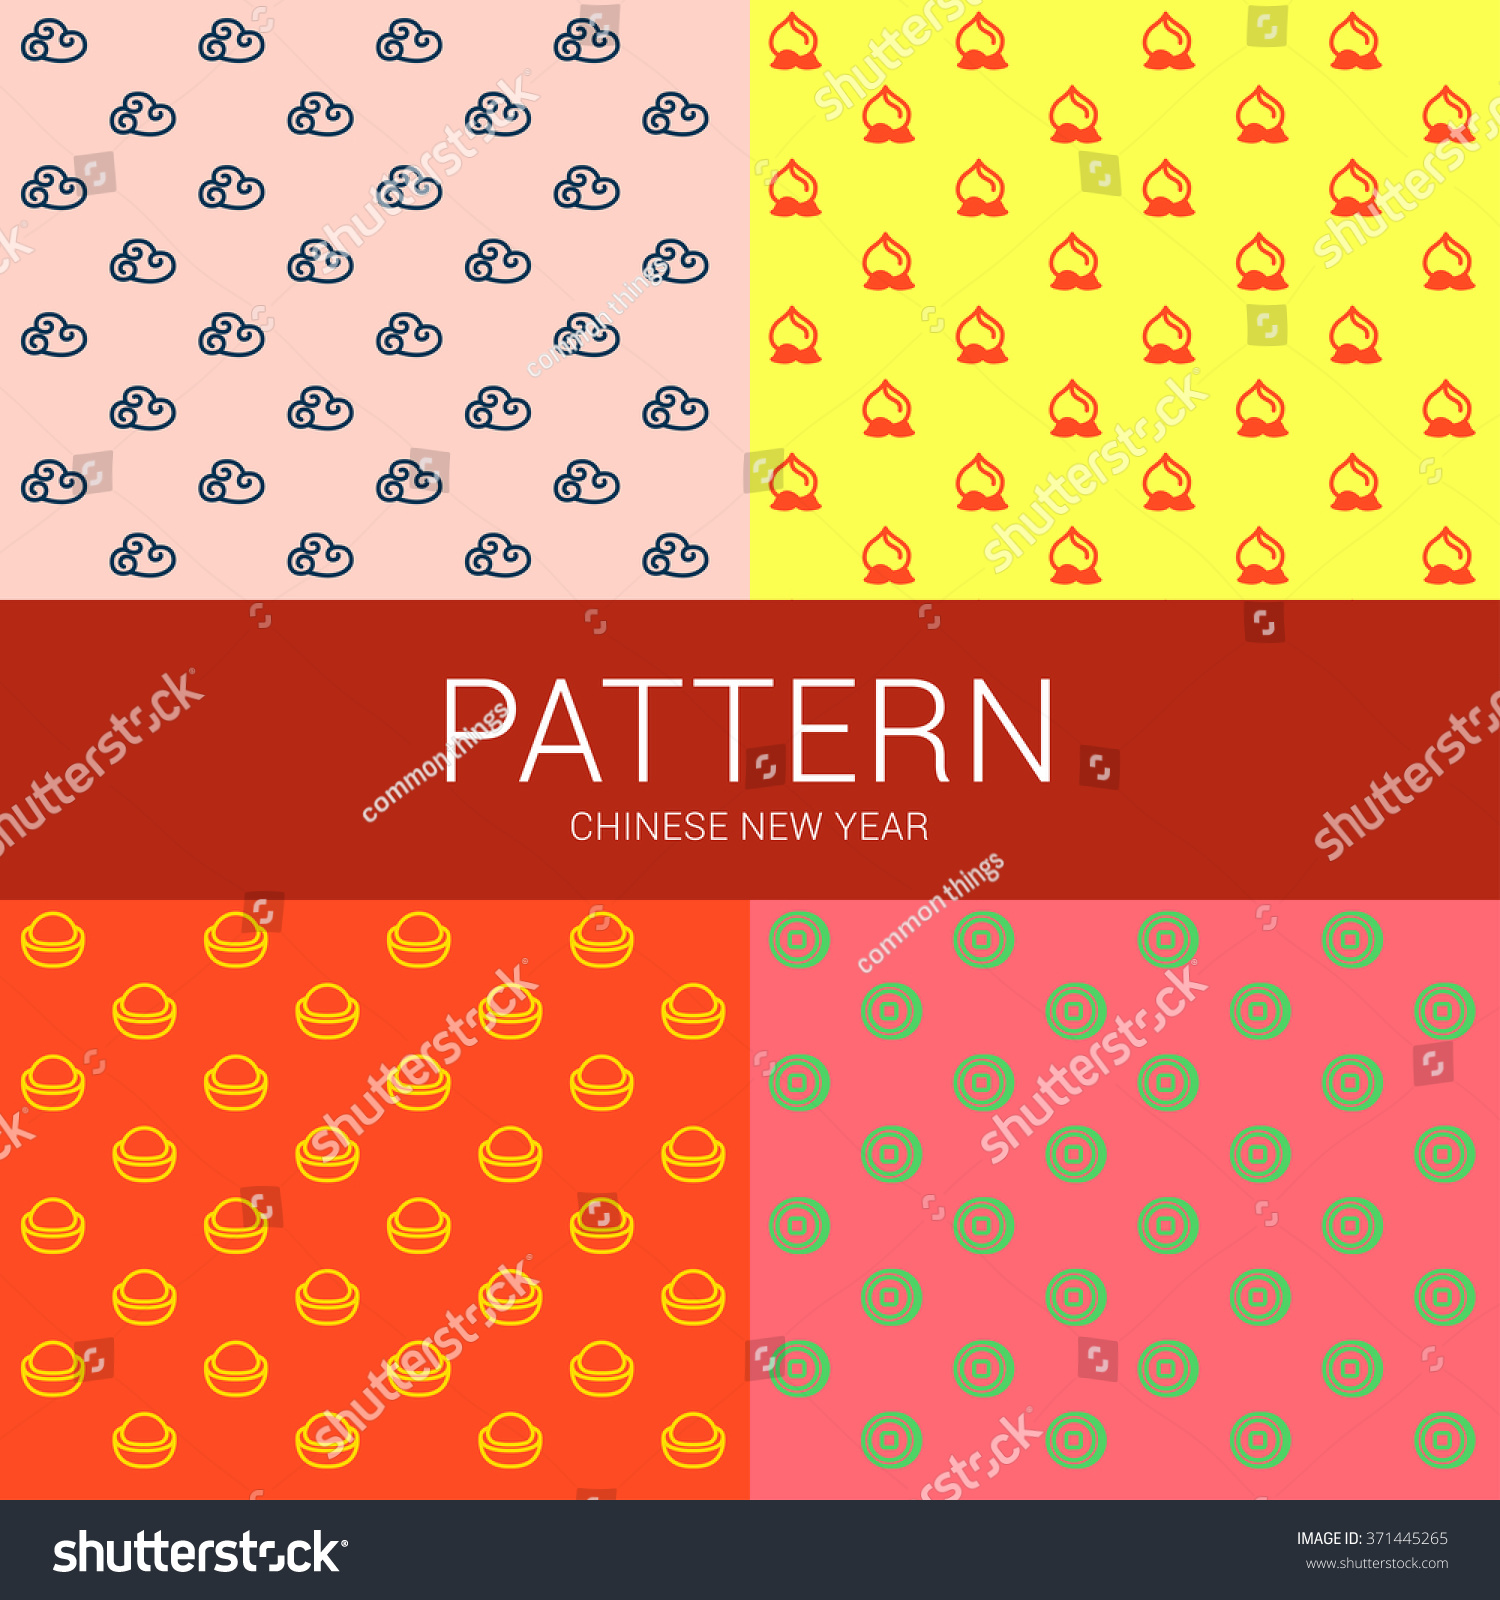 Pattern wealth 4 icons chinese greeting symbol stock vector pattern of wealth 4 icons of chinese greeting symbol are arranged as a pattern they buycottarizona Images